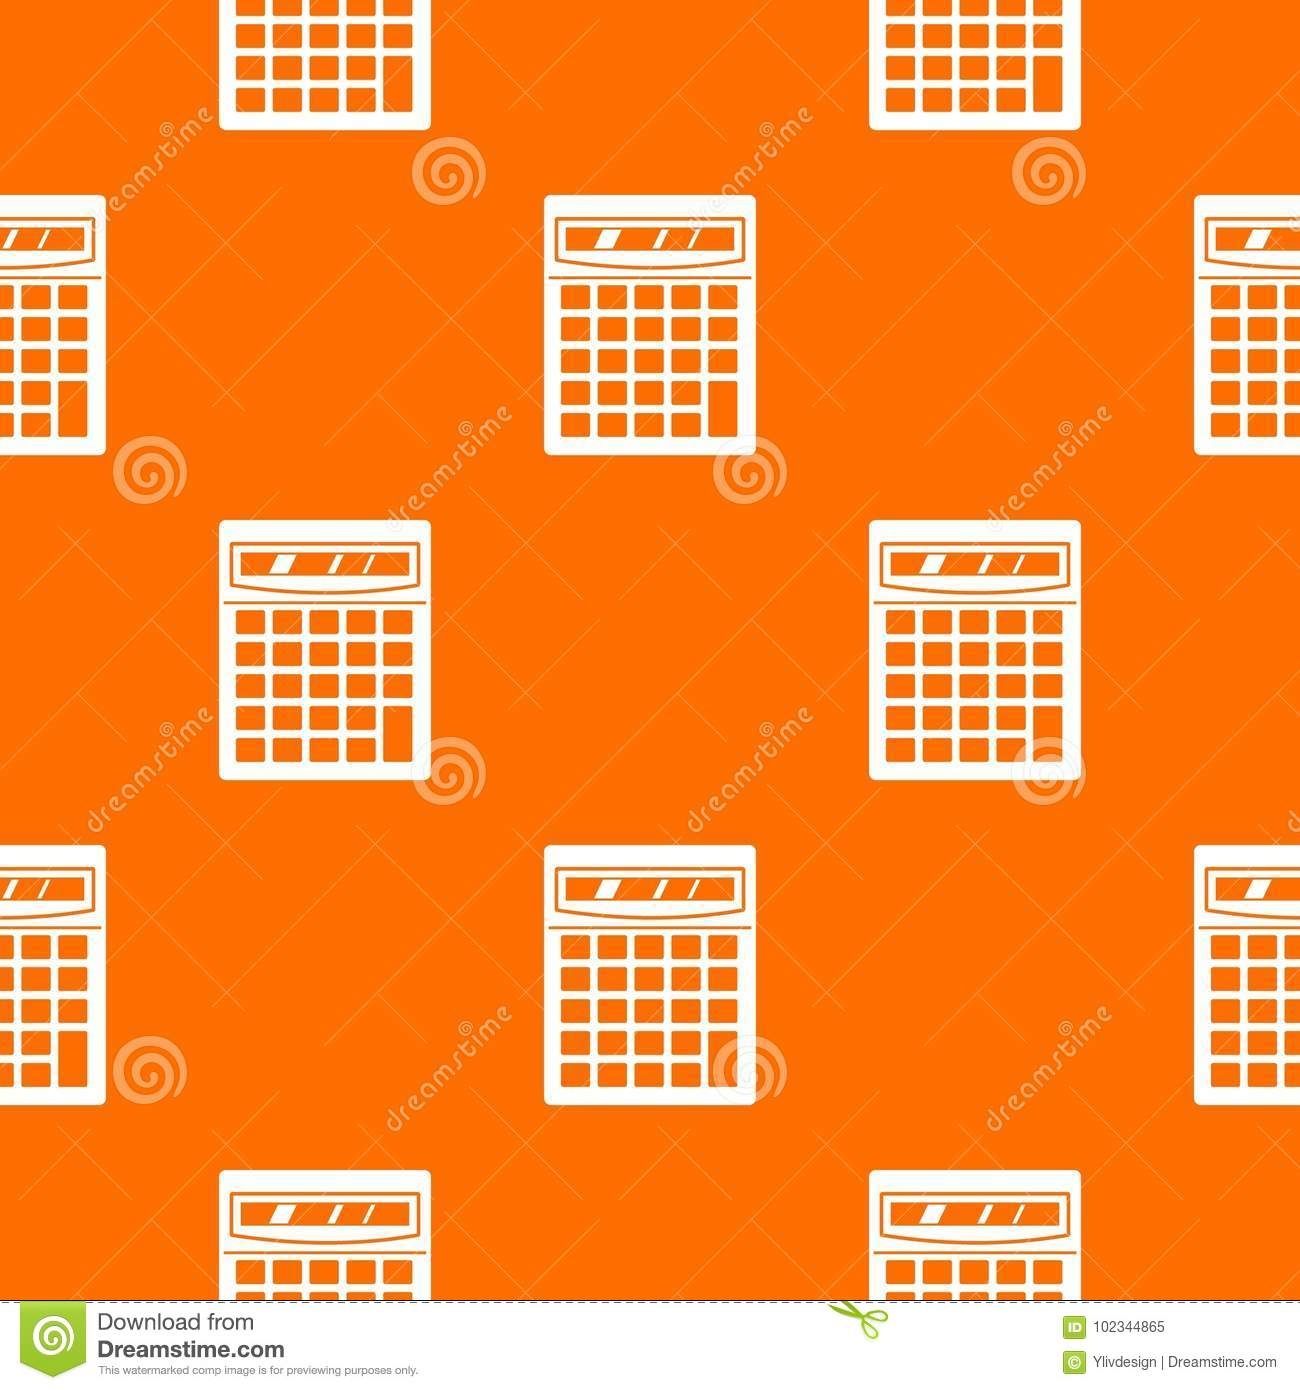 Electronic Pattern Making : Electronic calculator pattern seamless stock vector